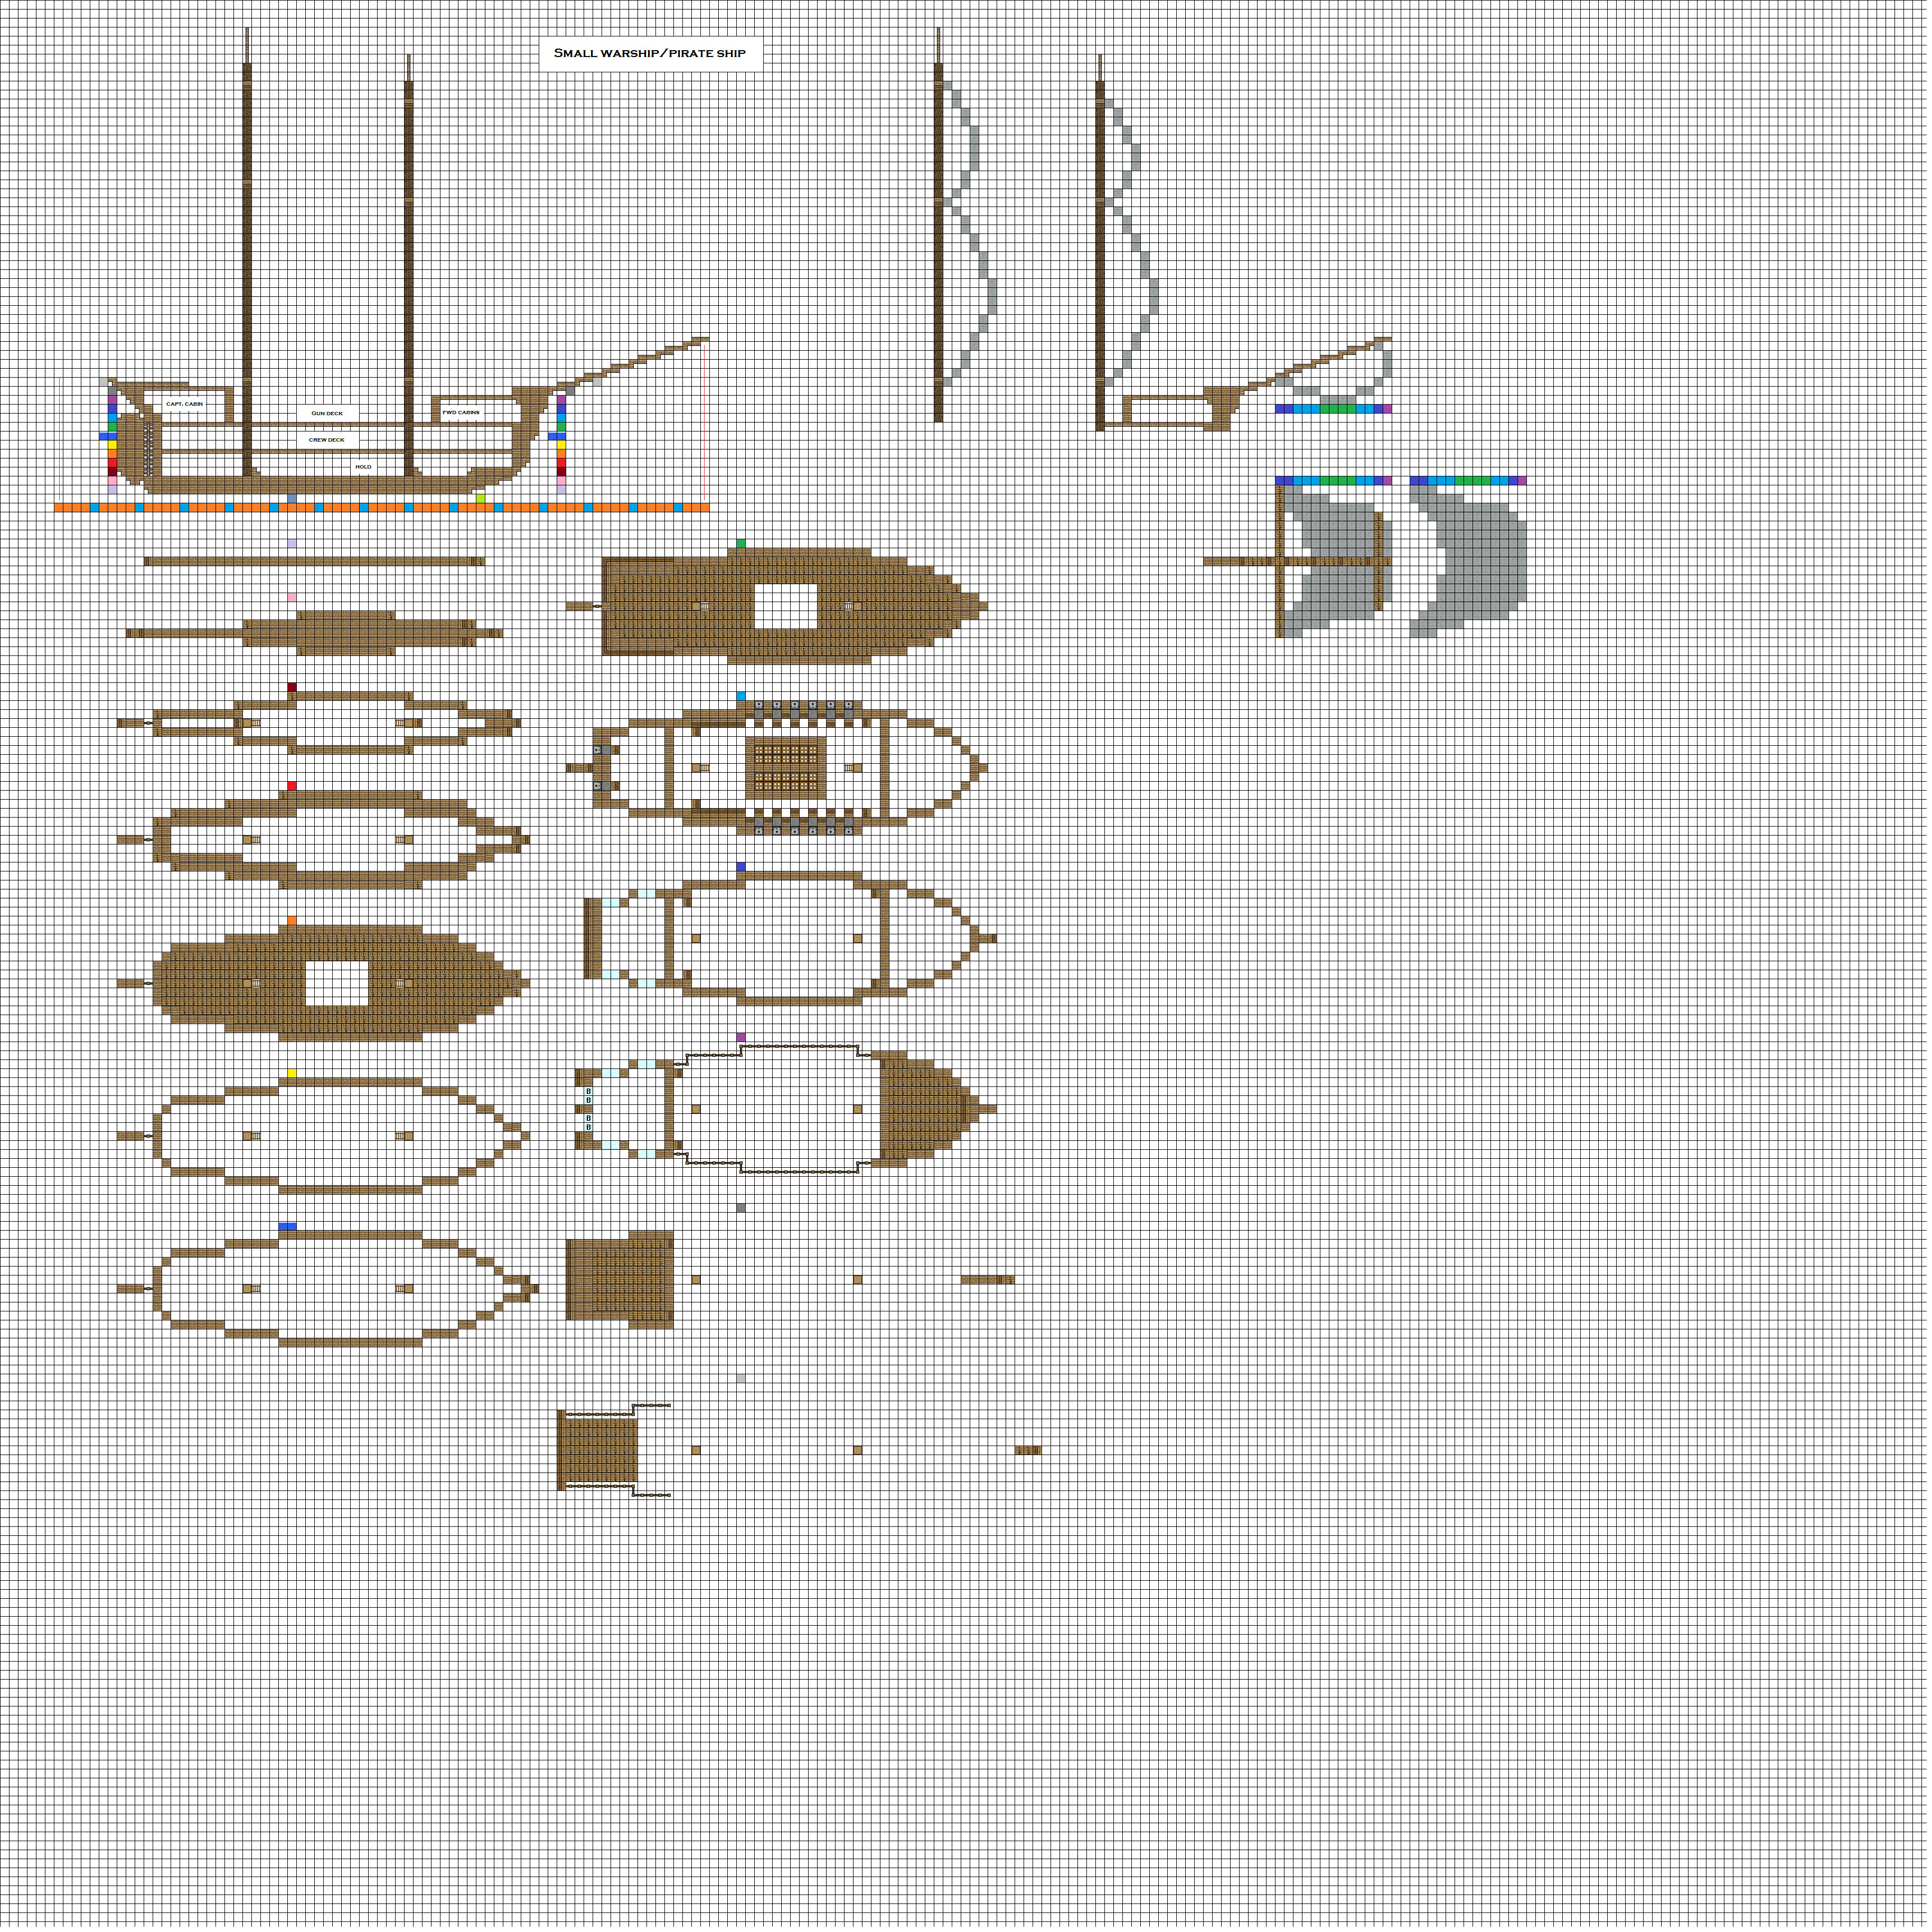 Minecraft Ship Blueprints Source Abuse Report Minecraft Ship Blueprints  Layer  Minecraft Ship Blueprints Layer by. Minecraft Ship Blueprints Layer By Layer